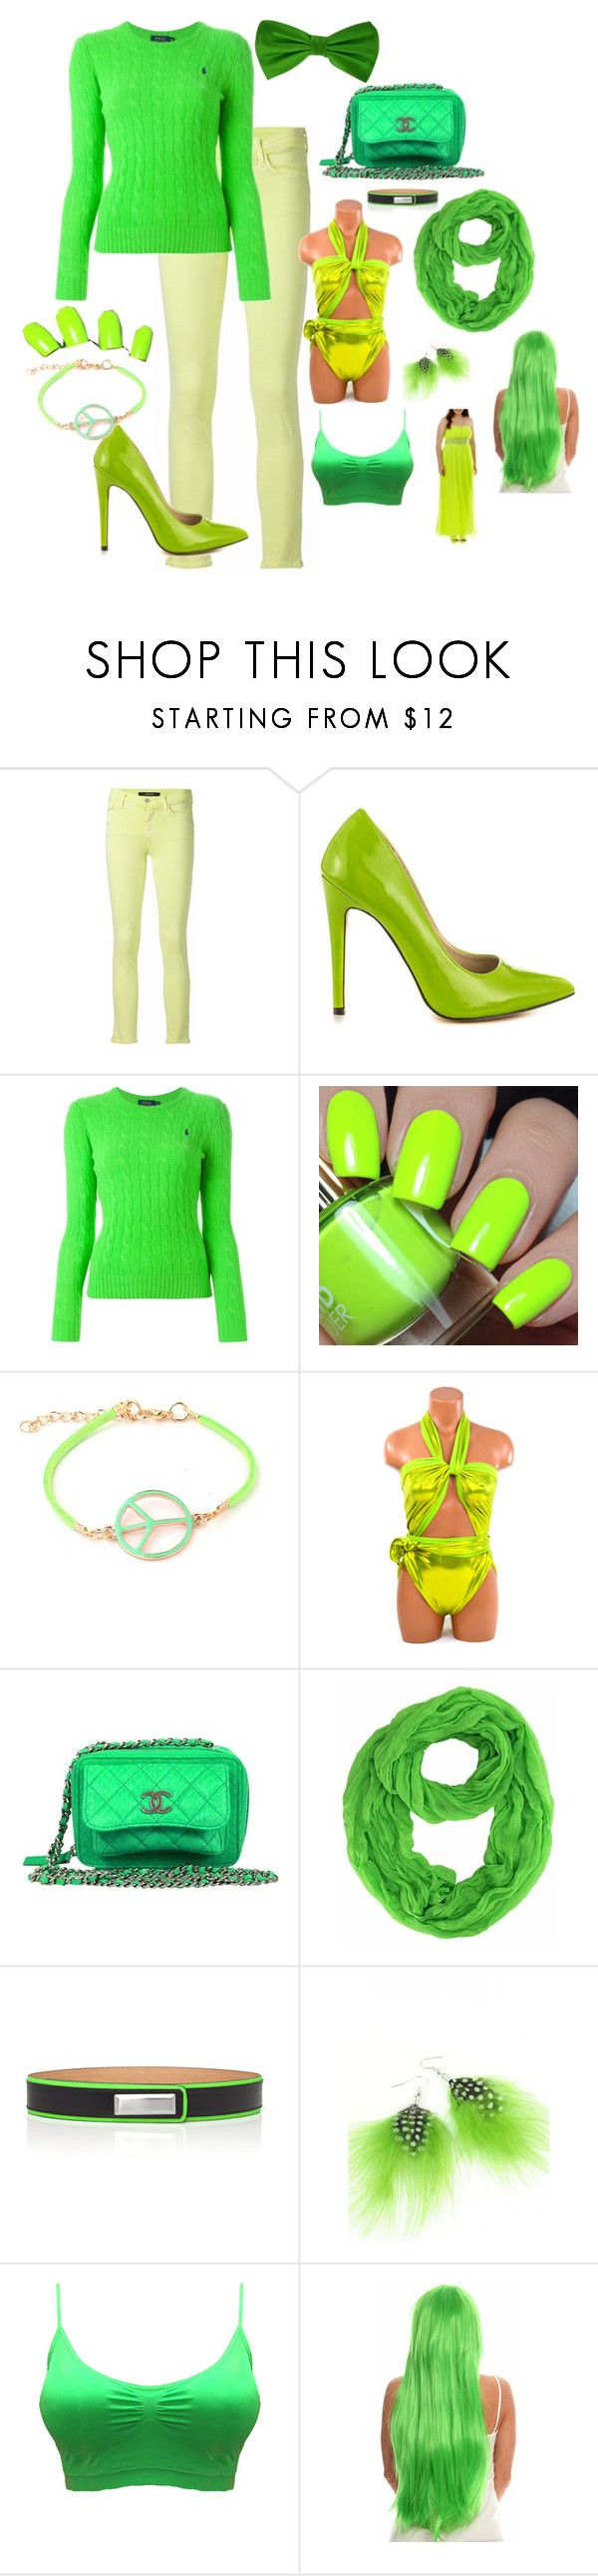 """lime green color collection"" by gatorlover52 ❤ liked on Polyvore featuring J Brand, Michael Antonio, Polo Ralph Lauren, Ruby Rocks, Prabal Gurung, Emi Jewellery, City Triangles and plus size dresses"